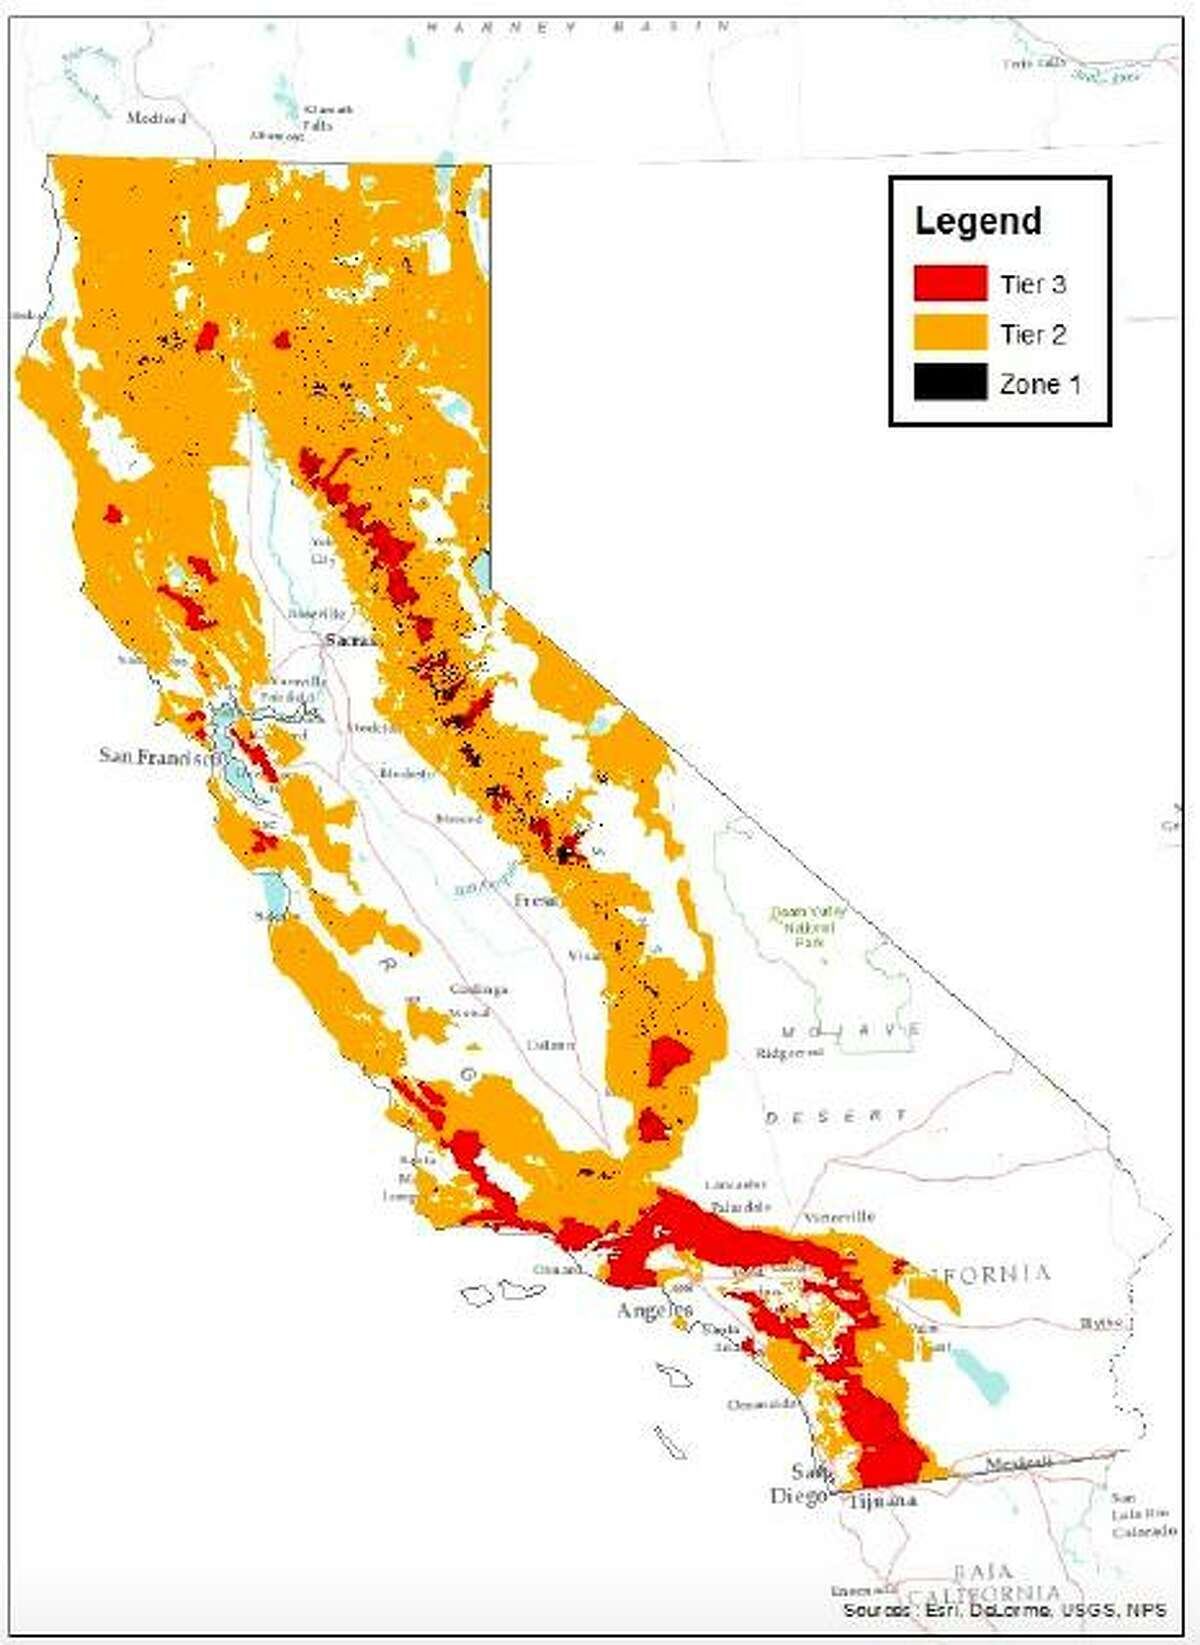 A map shows areas of normal, high, and extreme fire risk.